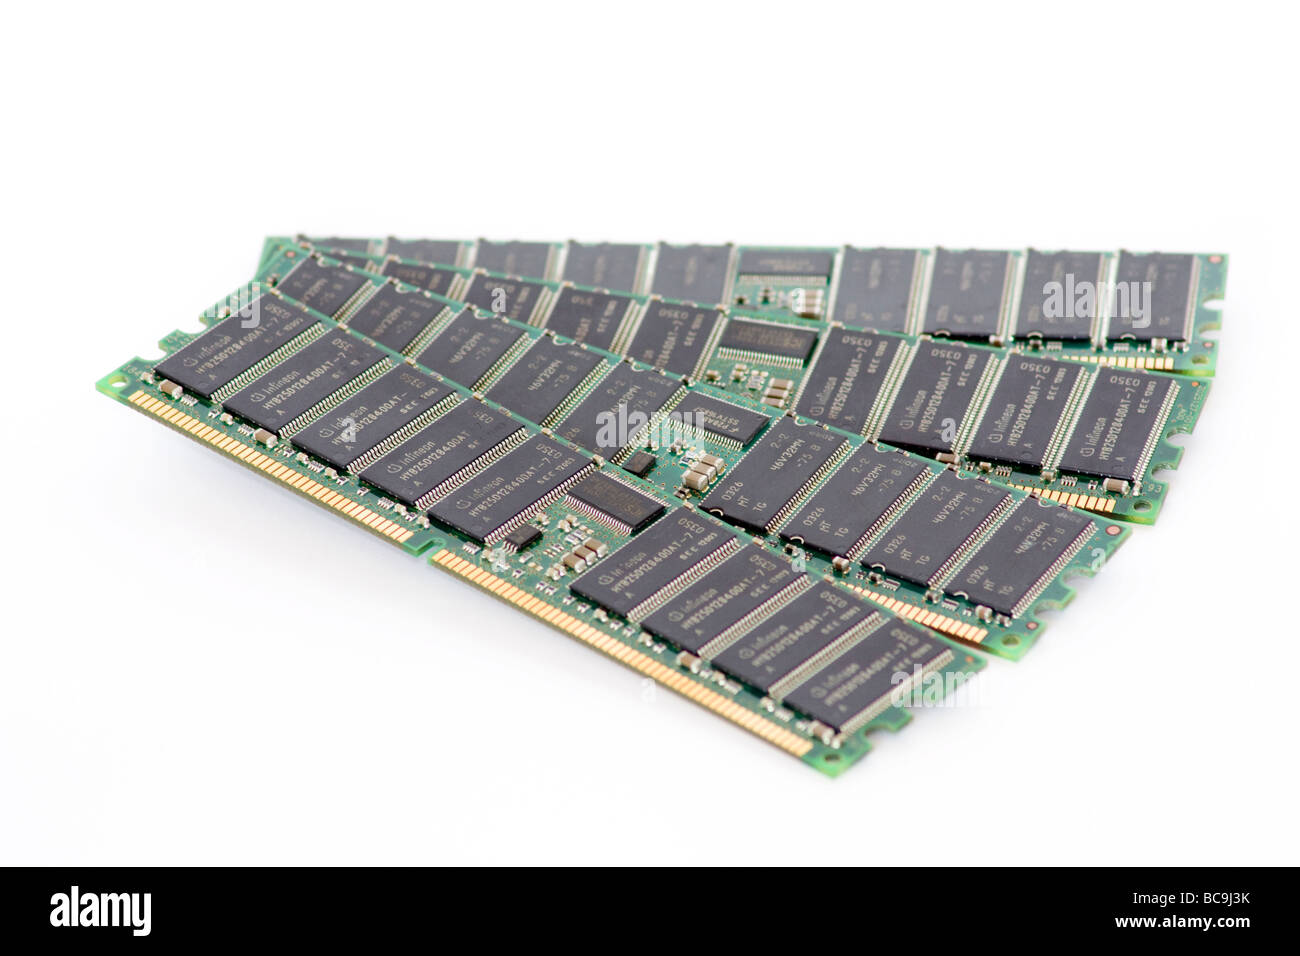 4 Sticks of DDR2 RAM diplayed in a fan on white background - Stock Image